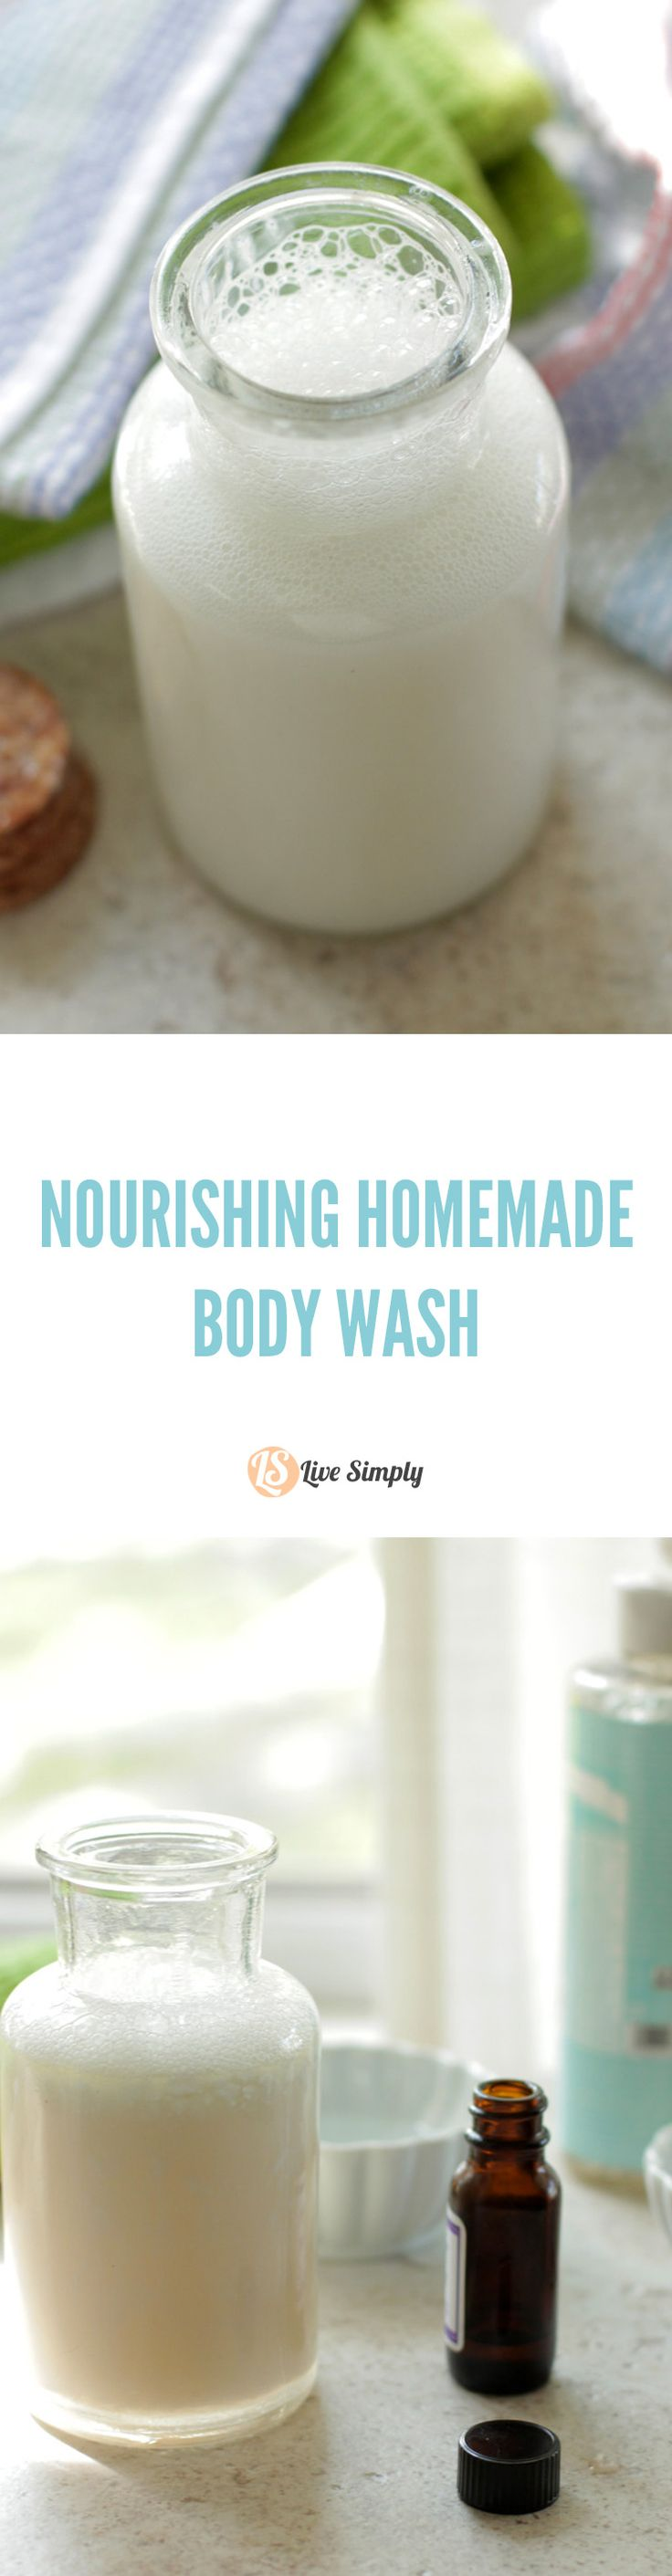 DIY natural body wash that moisturizes and cleans! This body wash leaves my skin silky soft and smelling amazing. I haven't purchased body wash in years thanks to this recipe.